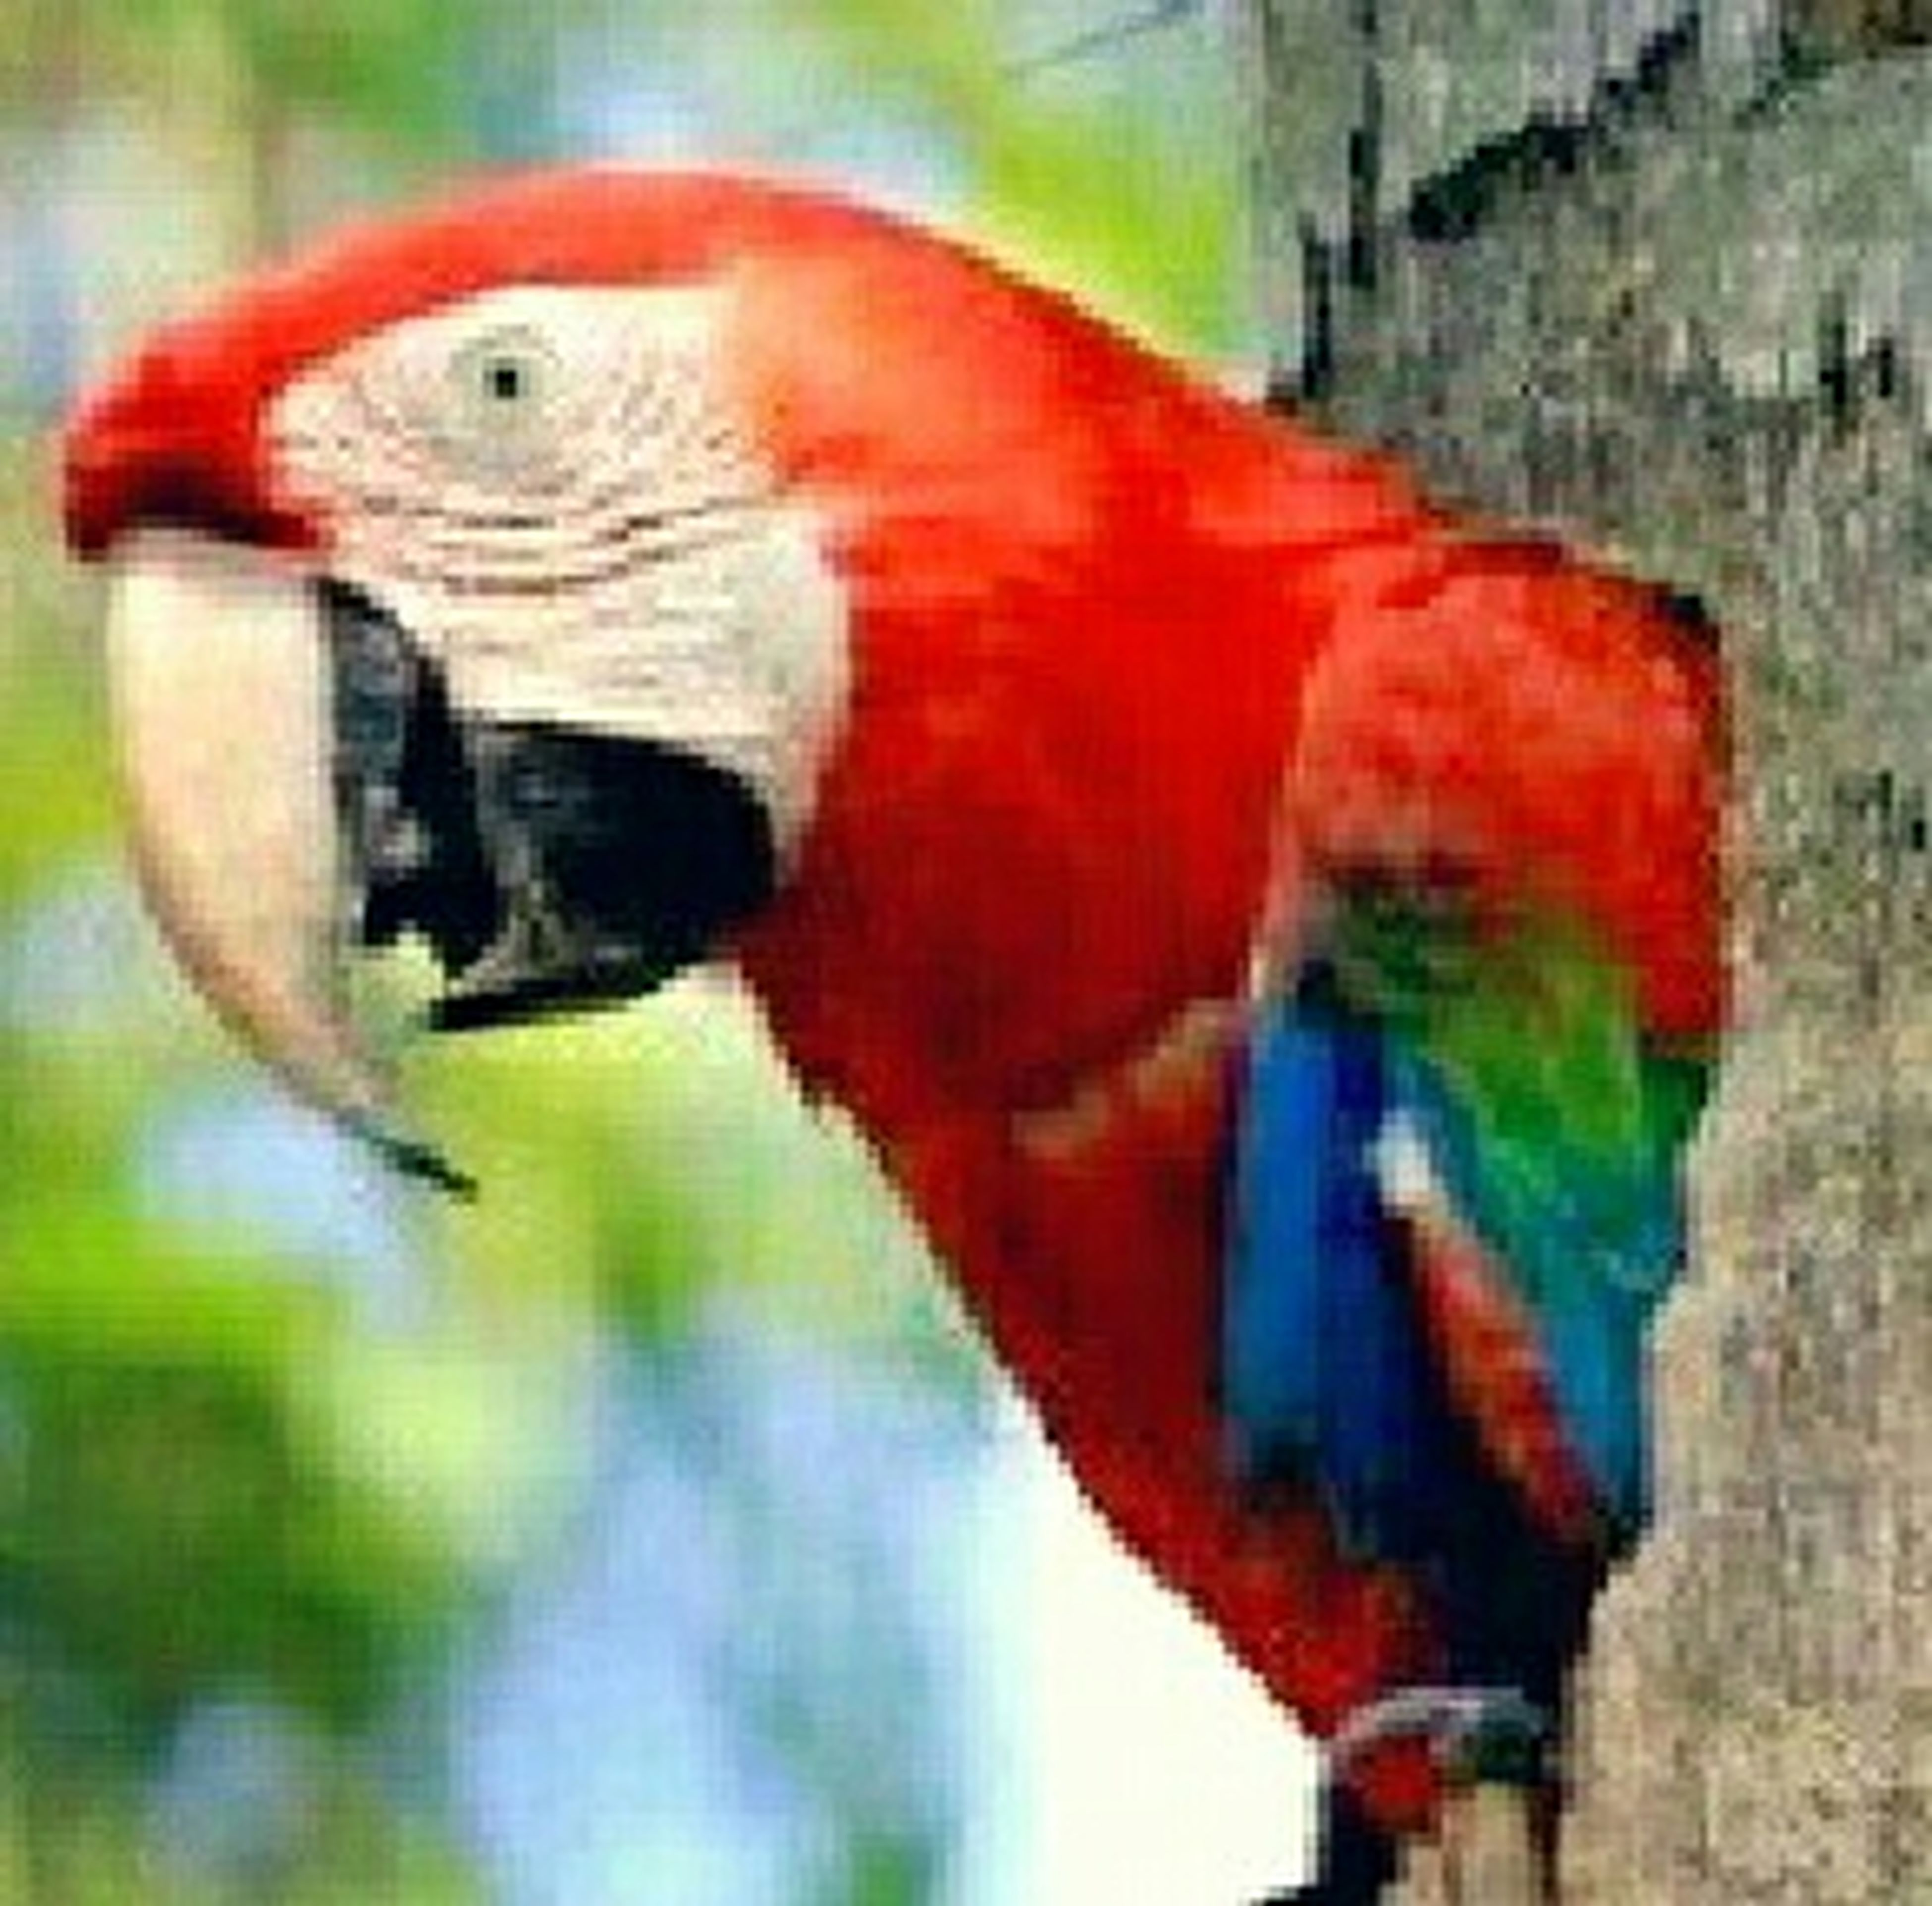 animal themes, bird, animals in the wild, wildlife, one animal, focus on foreground, close-up, parrot, red, multi colored, beak, day, animal head, outdoors, selective focus, two animals, perching, no people, portrait, side view